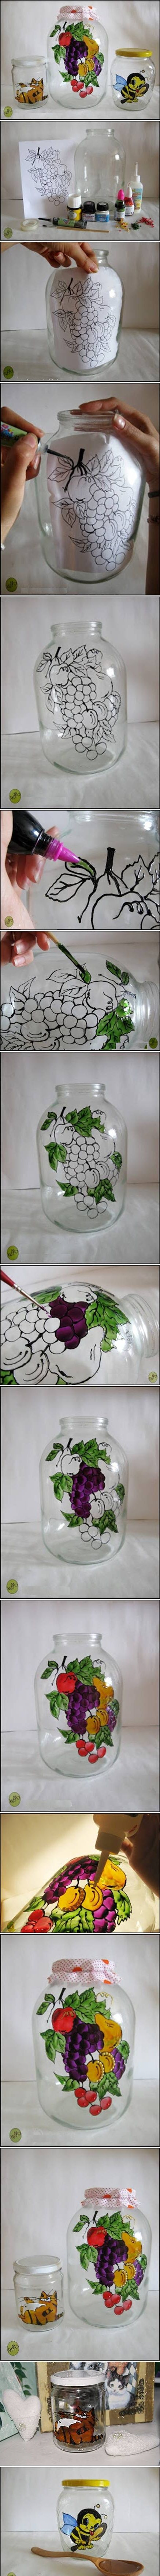 How to decorate your jars with glass paint. Top Tip - Draw Your Design onto a piece of paper and insert it inside the glass object / vase / jar or behind the piece of glass.  This gives you your template!  All you need now is a steady hand to trace around your design!